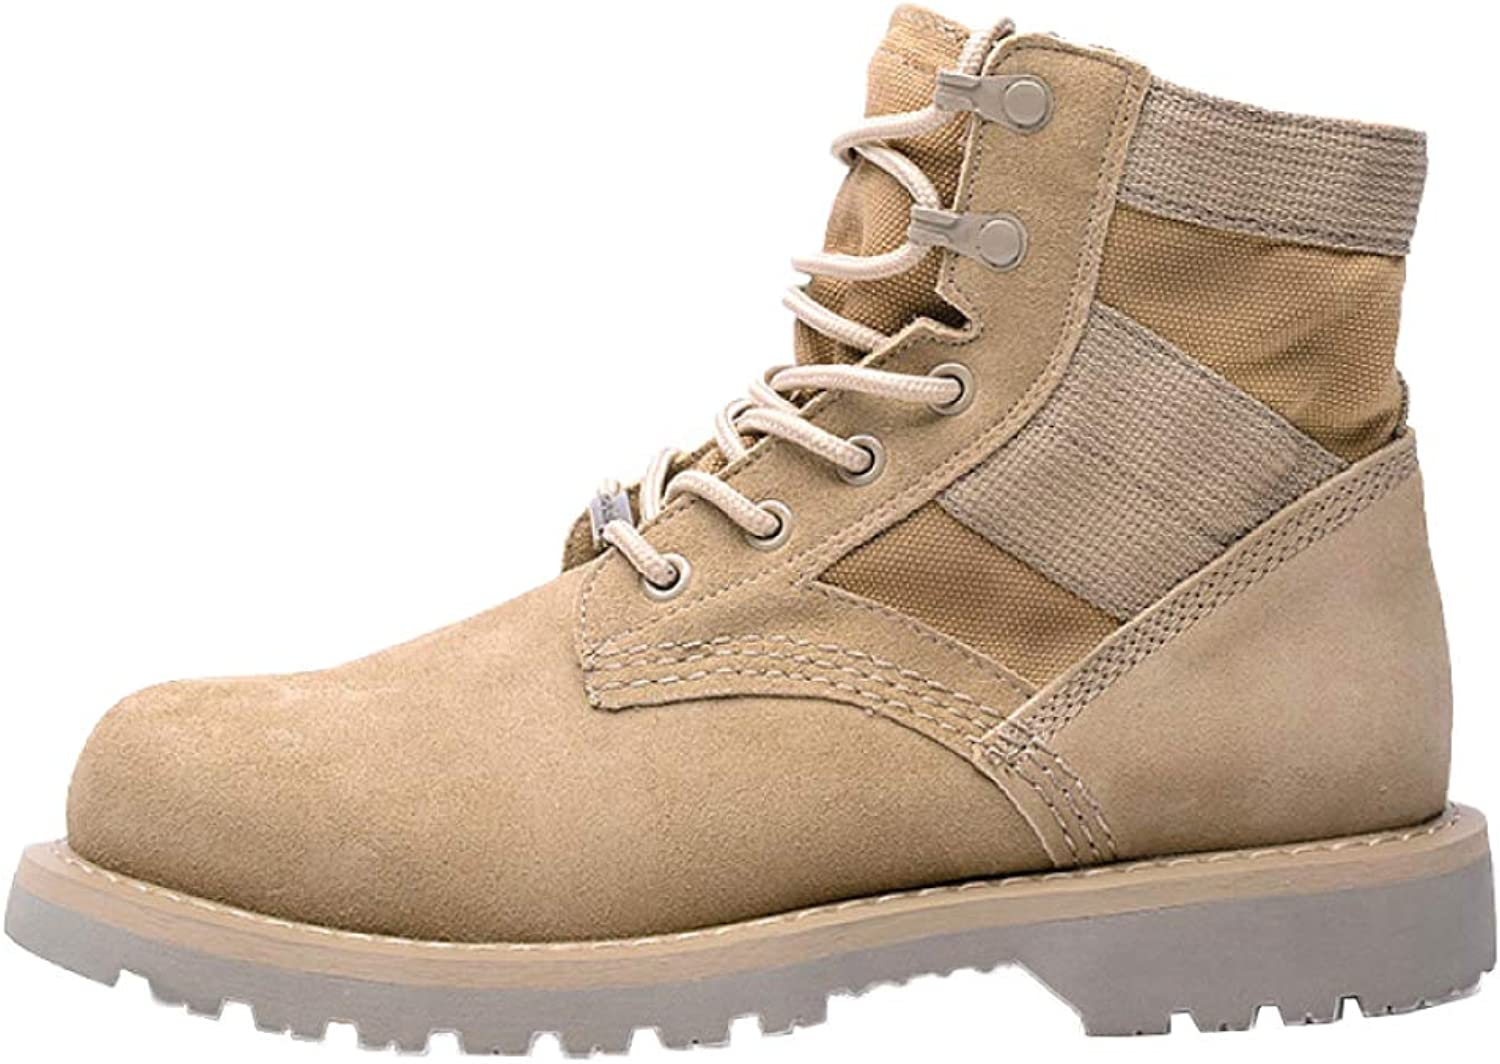 Men's Martin Boots Leather Chukka High Help Boots Desert Tactics Boots Snow Boots Work Boots High Help Lace-up shoes